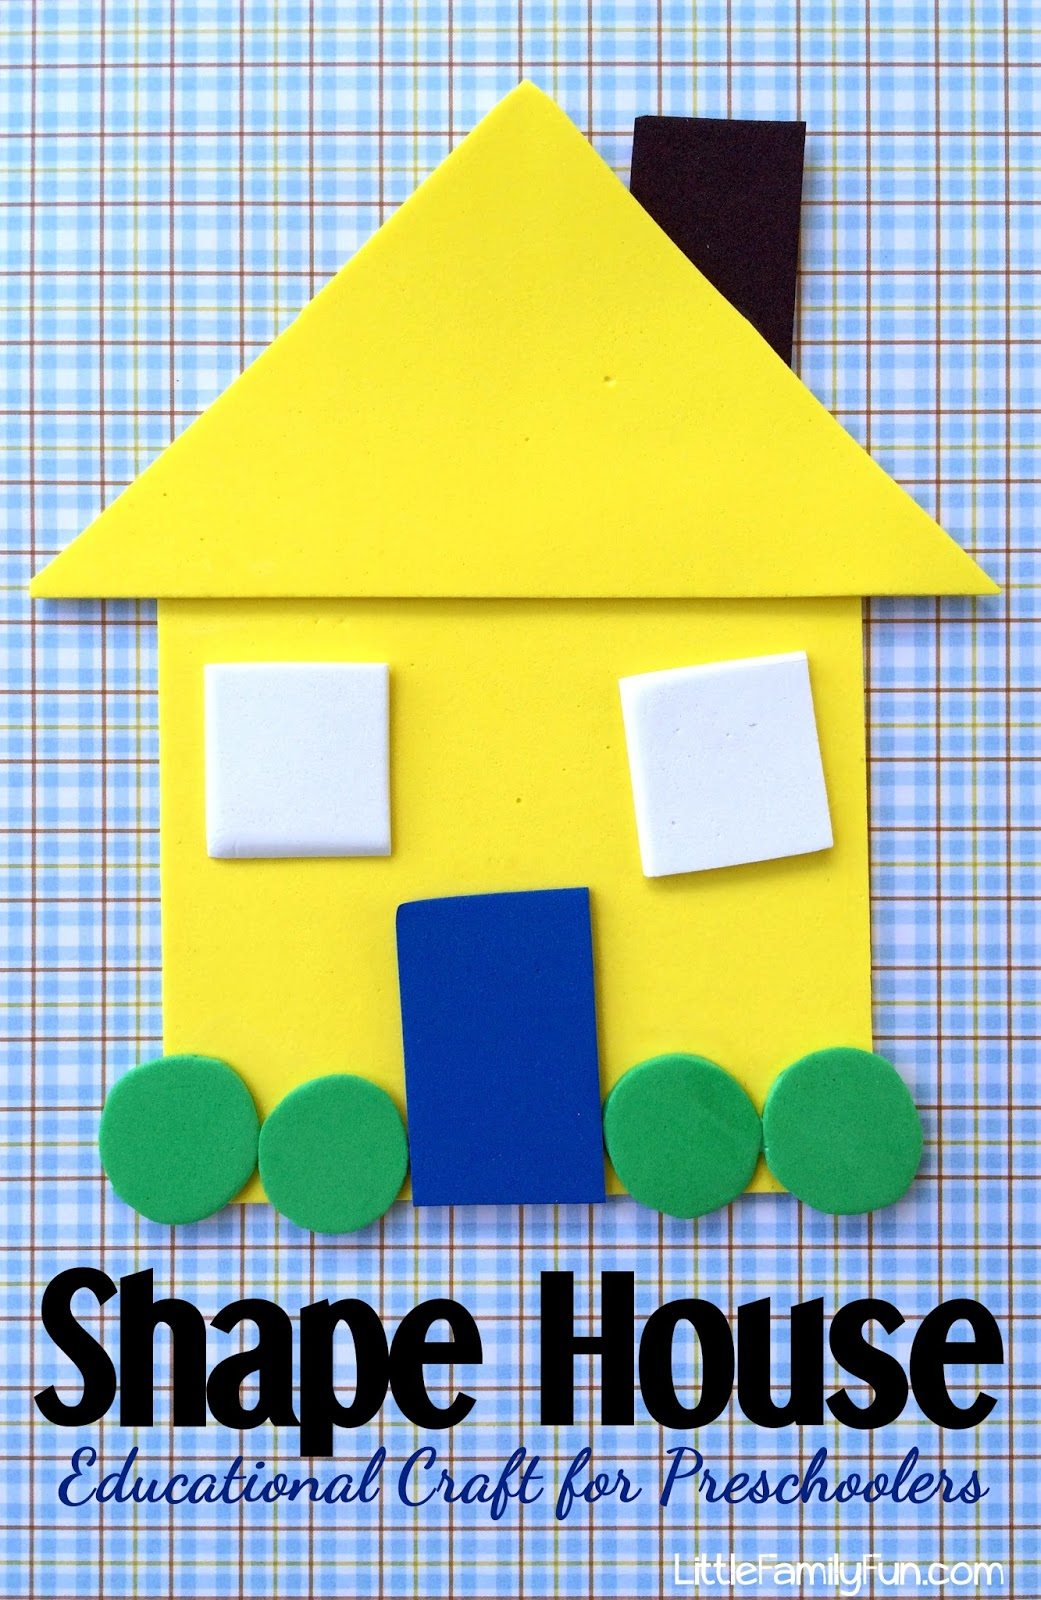 Learn about crafts kids can make to celebrate thanksgiving. Little Family Fun Shape House Educational Craft